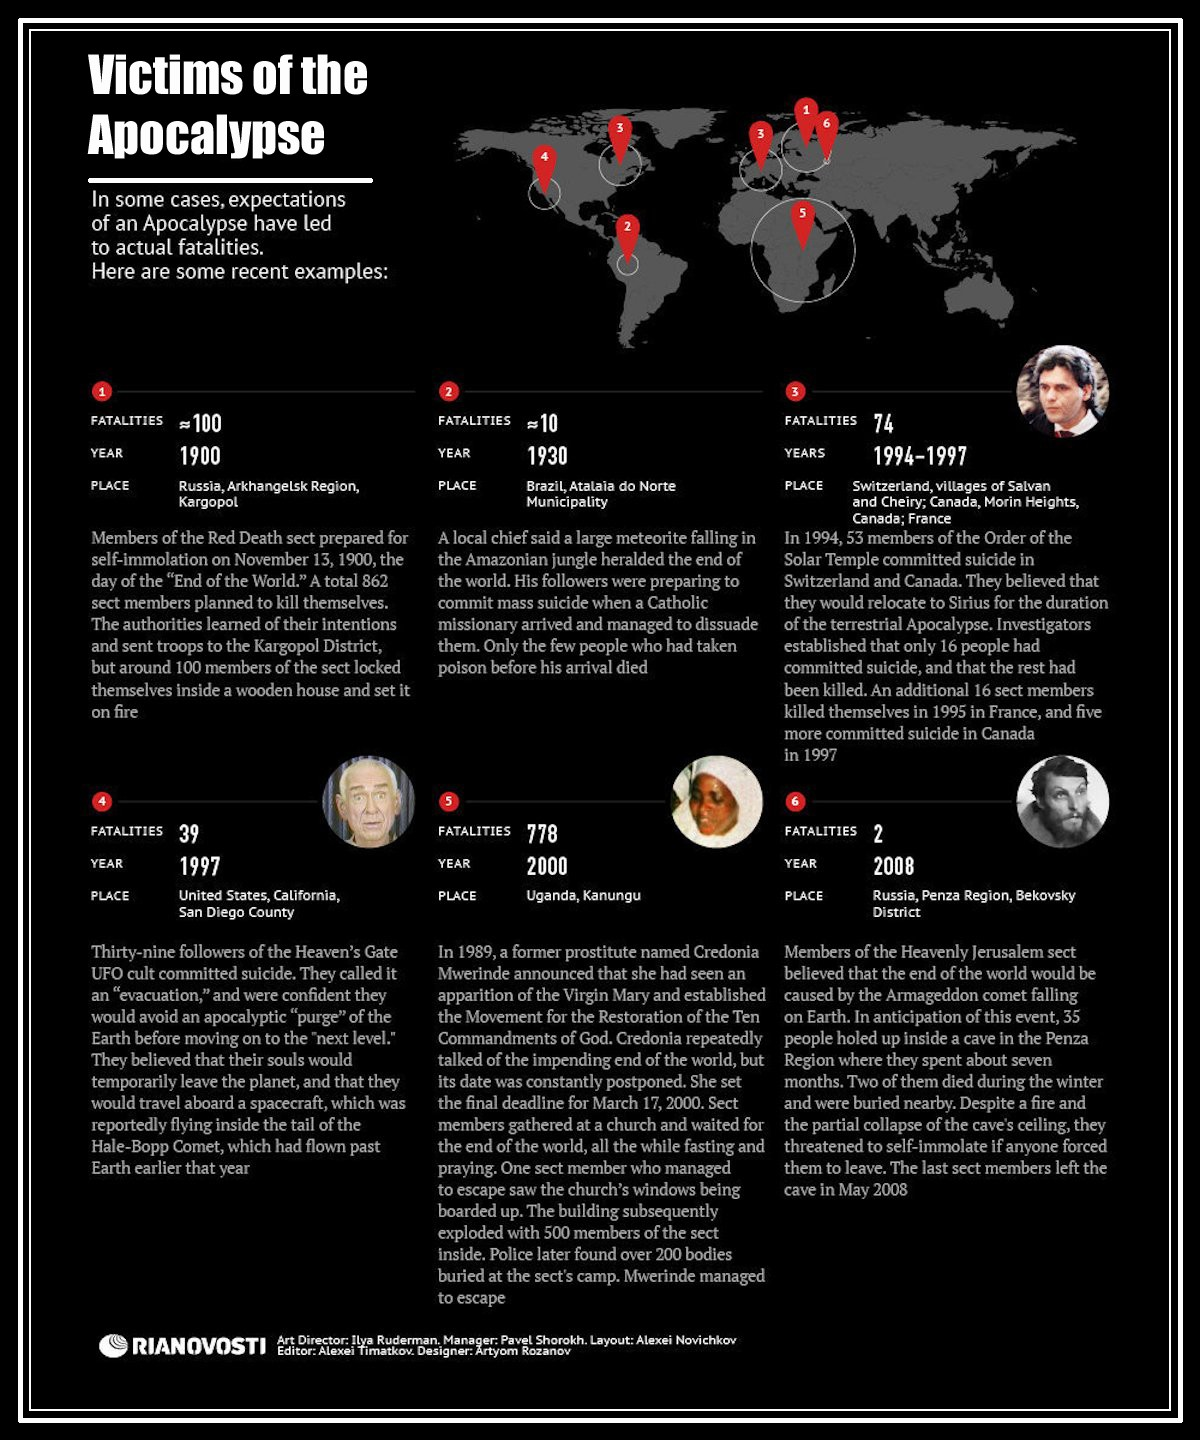 00 RIA-Novosti Infographics. Victims of the Apocalypse. 2012